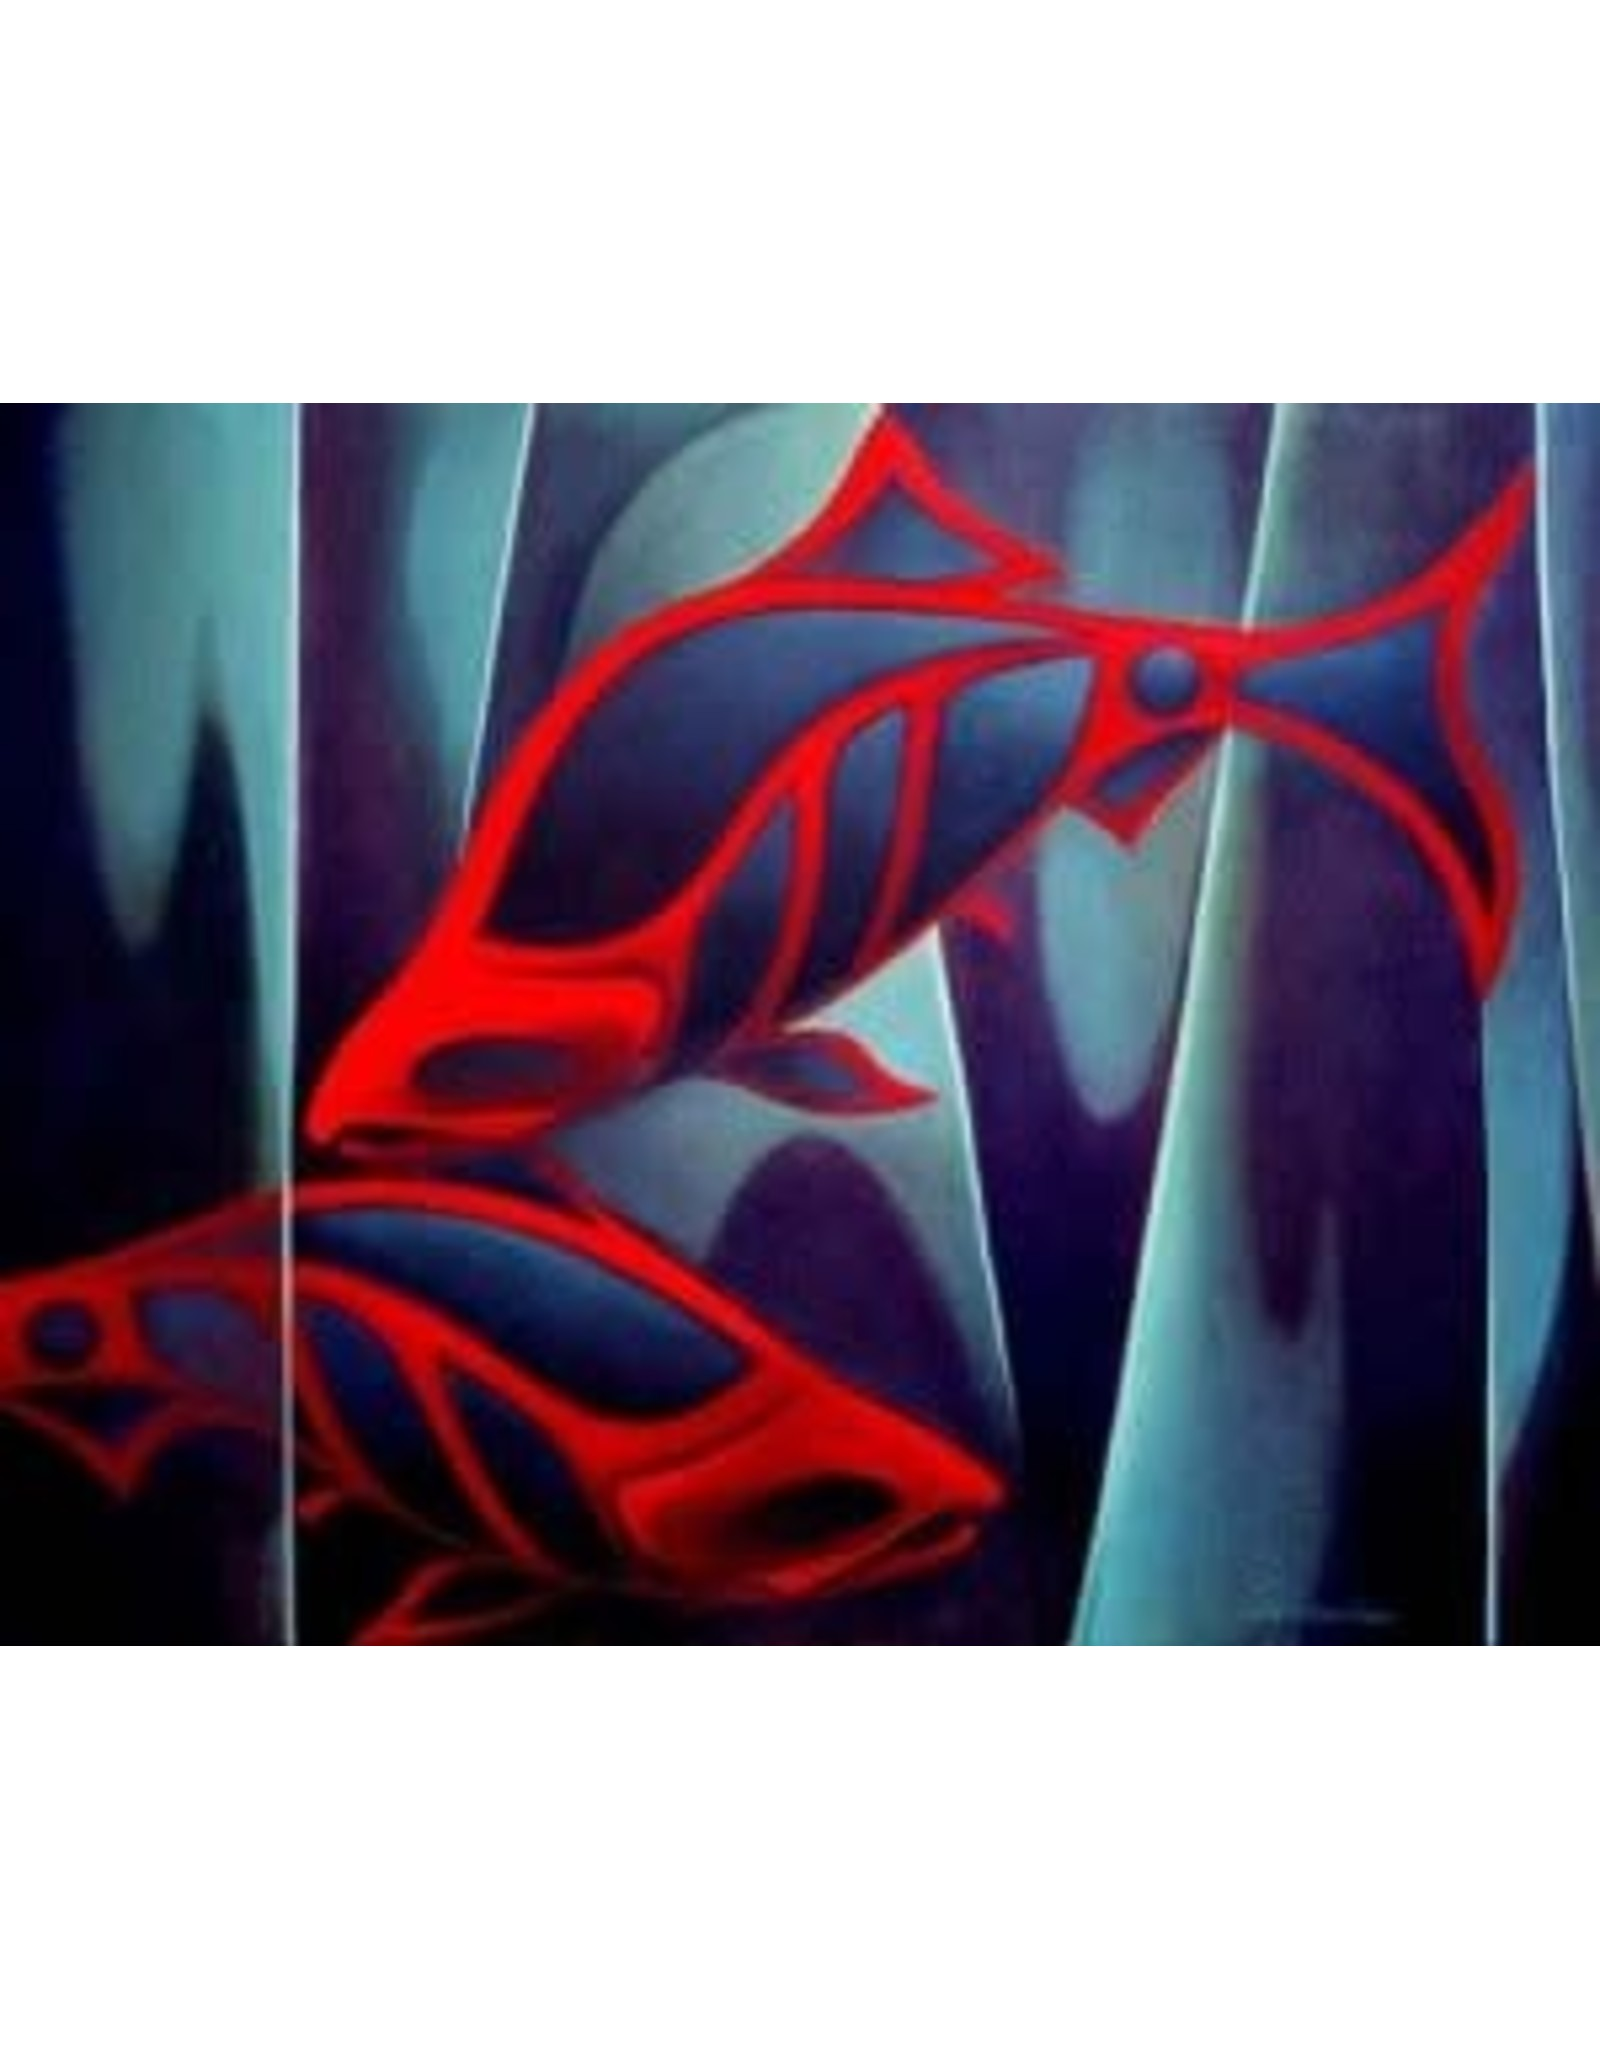 Nathalie Parenteau Silence and Salmon (art card) | Nathalie Parenteau